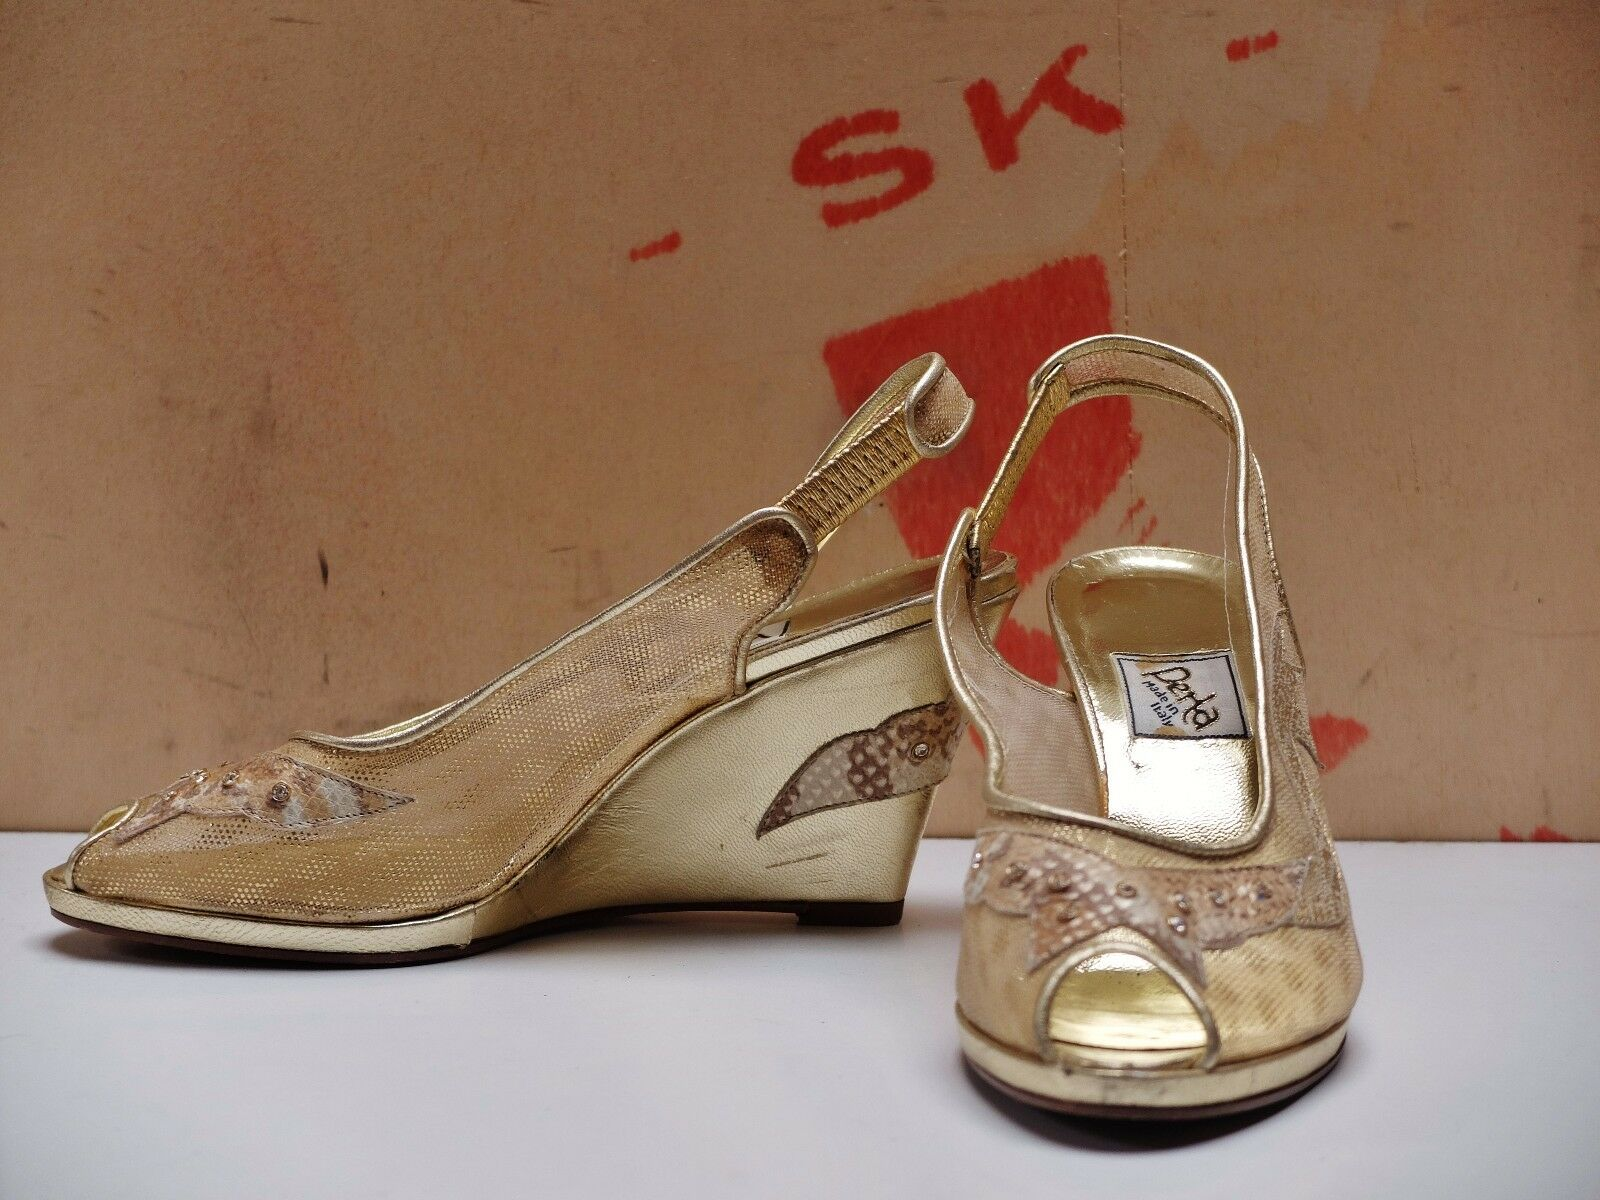 Perla Damen pumps Wedges Netz Sandalen Gr. 36 UK UK UK 3 peeptoes Gold TRUE VINTAGE 53e13d